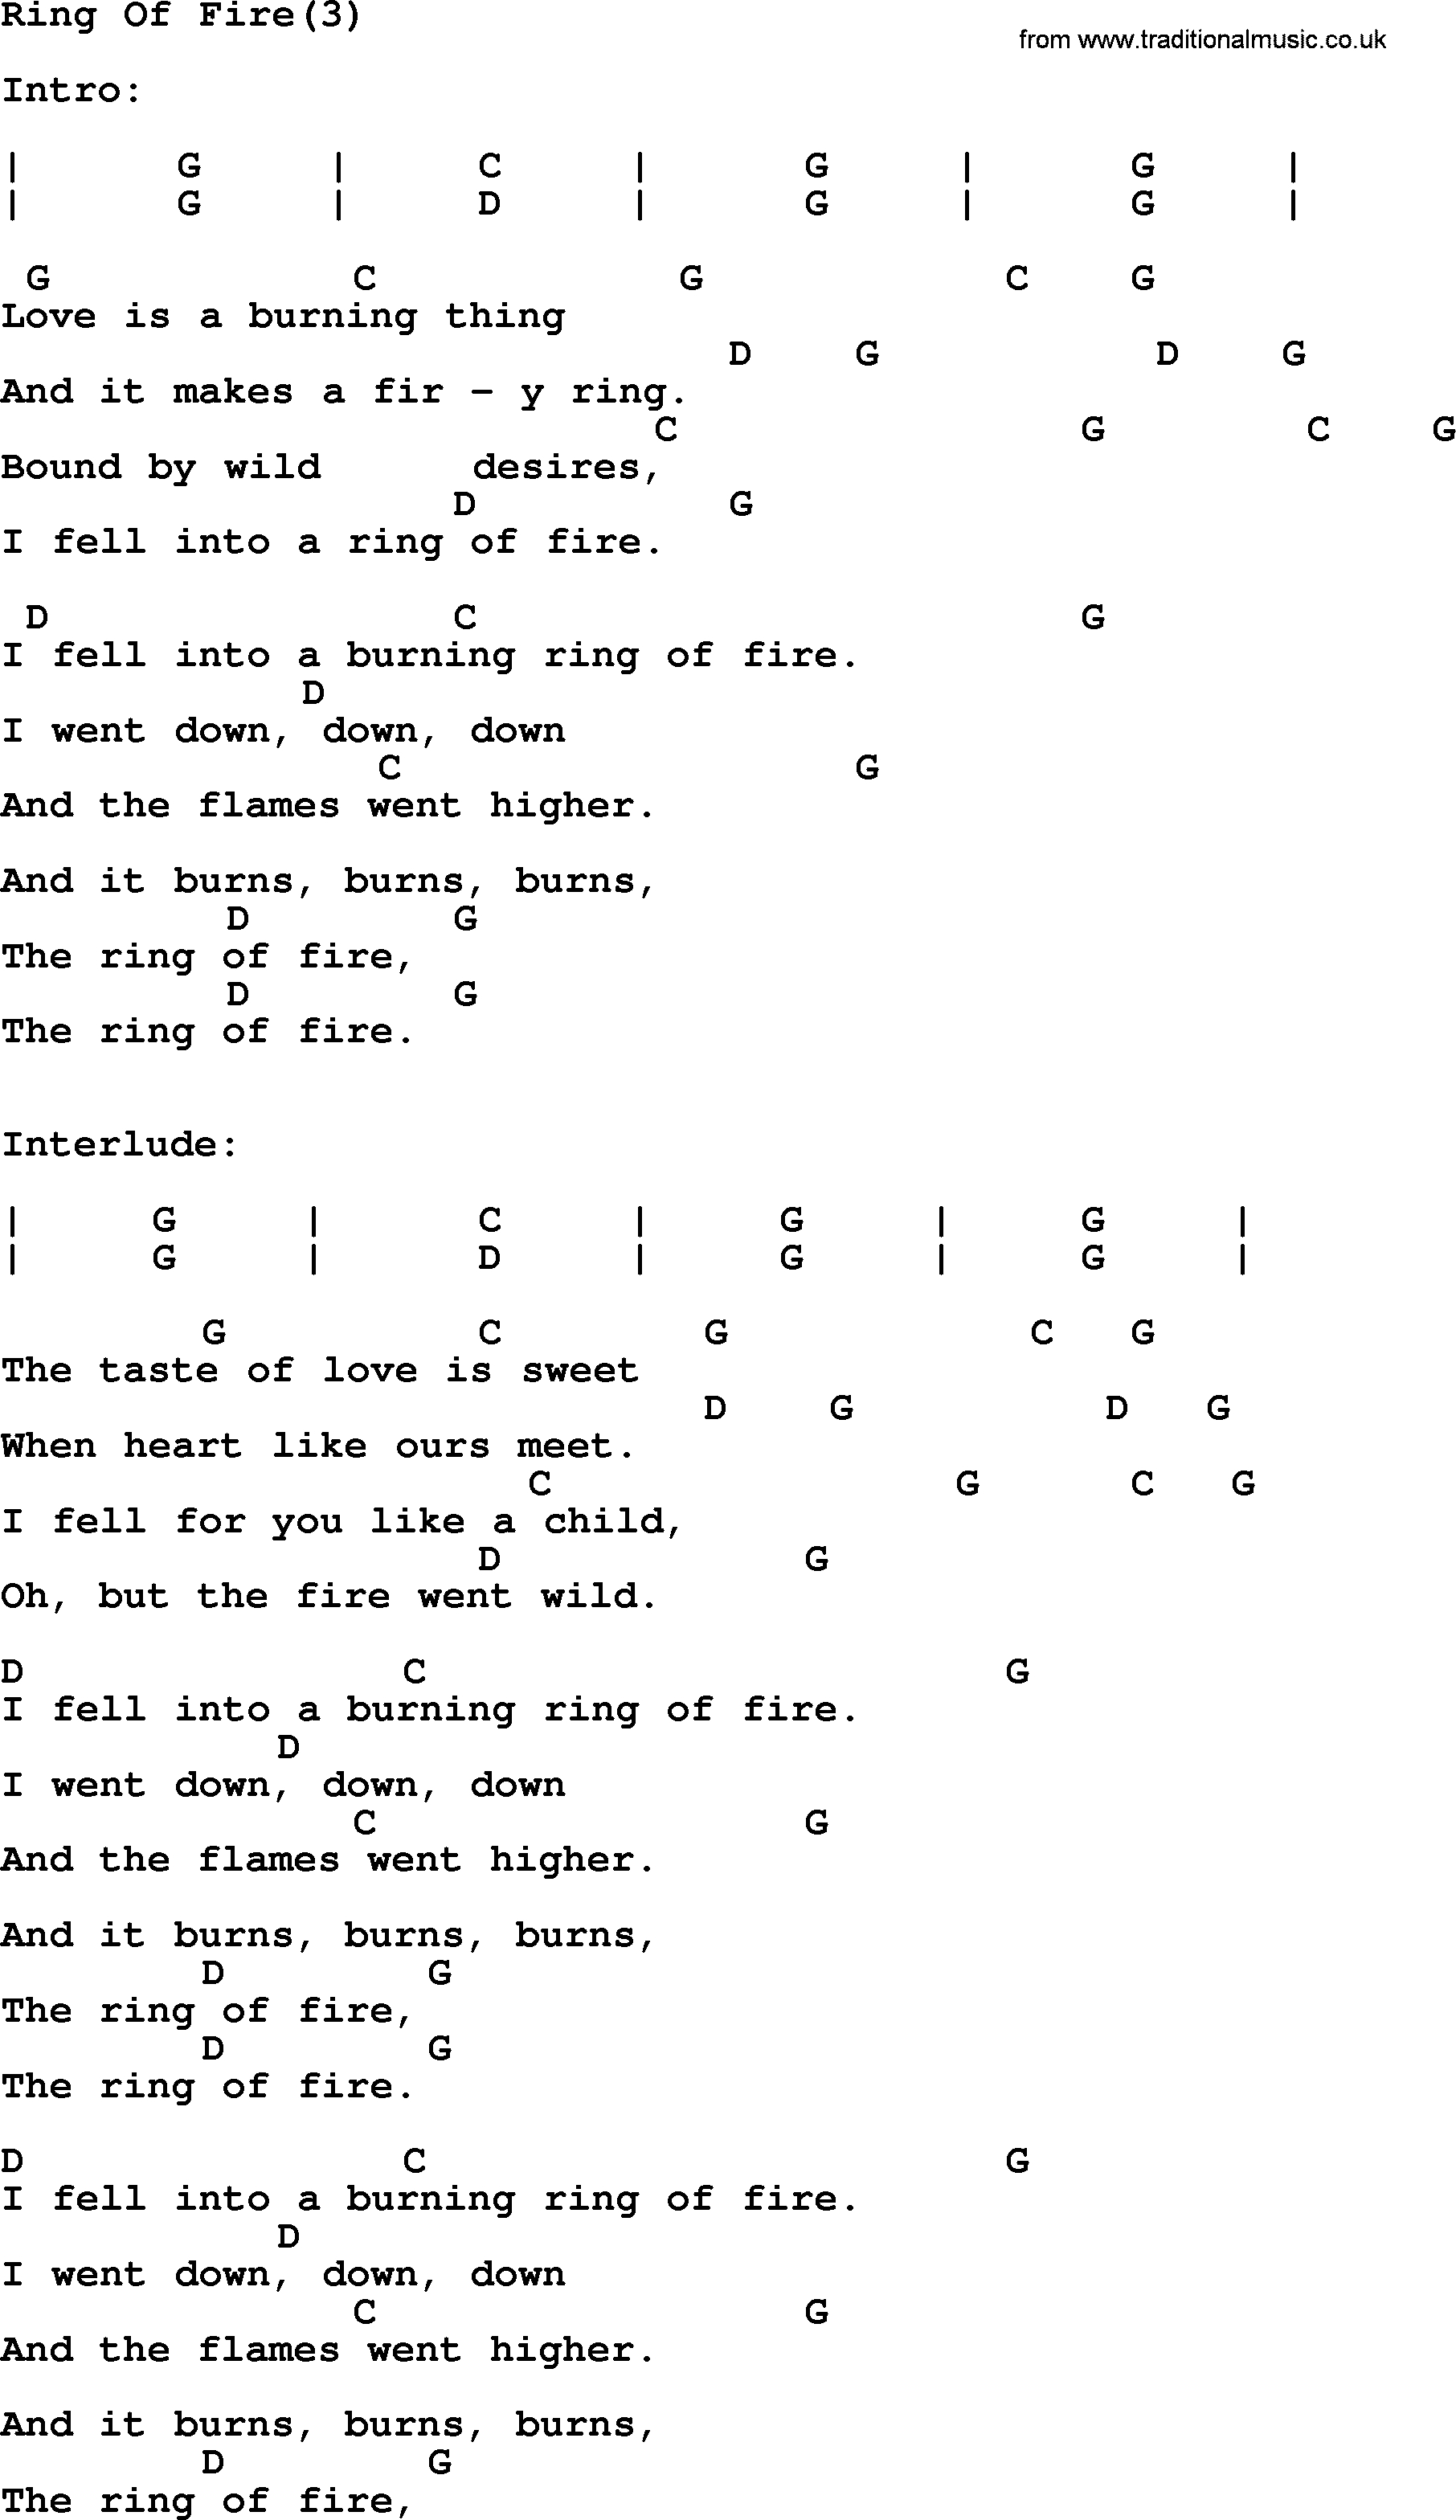 Ring Of Fire Chords Johnny Cash Song Ring Of Fire3 Lyrics And Chords